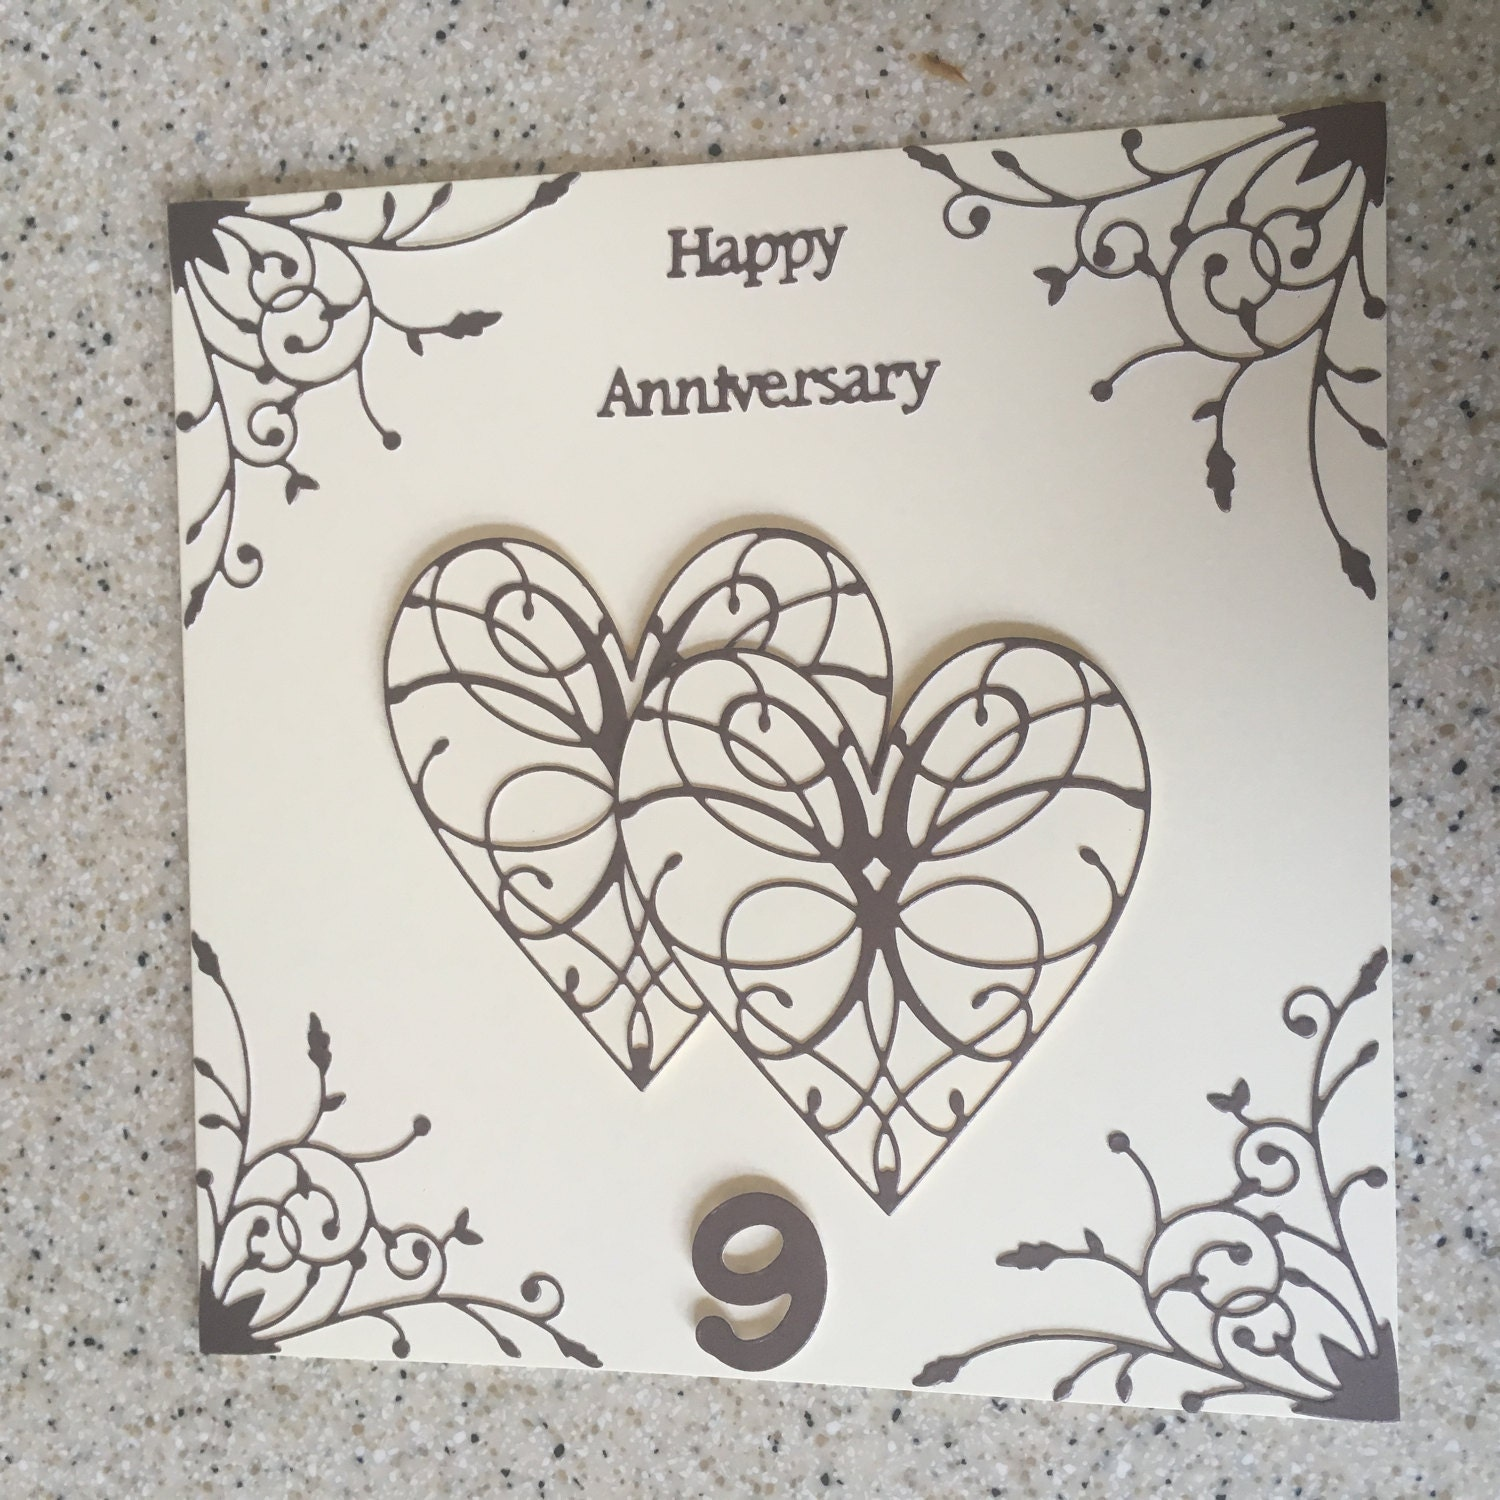 Pottery Wedding Anniversary Gifts: Large 8 Square Handmade Happy Pottery Wedding